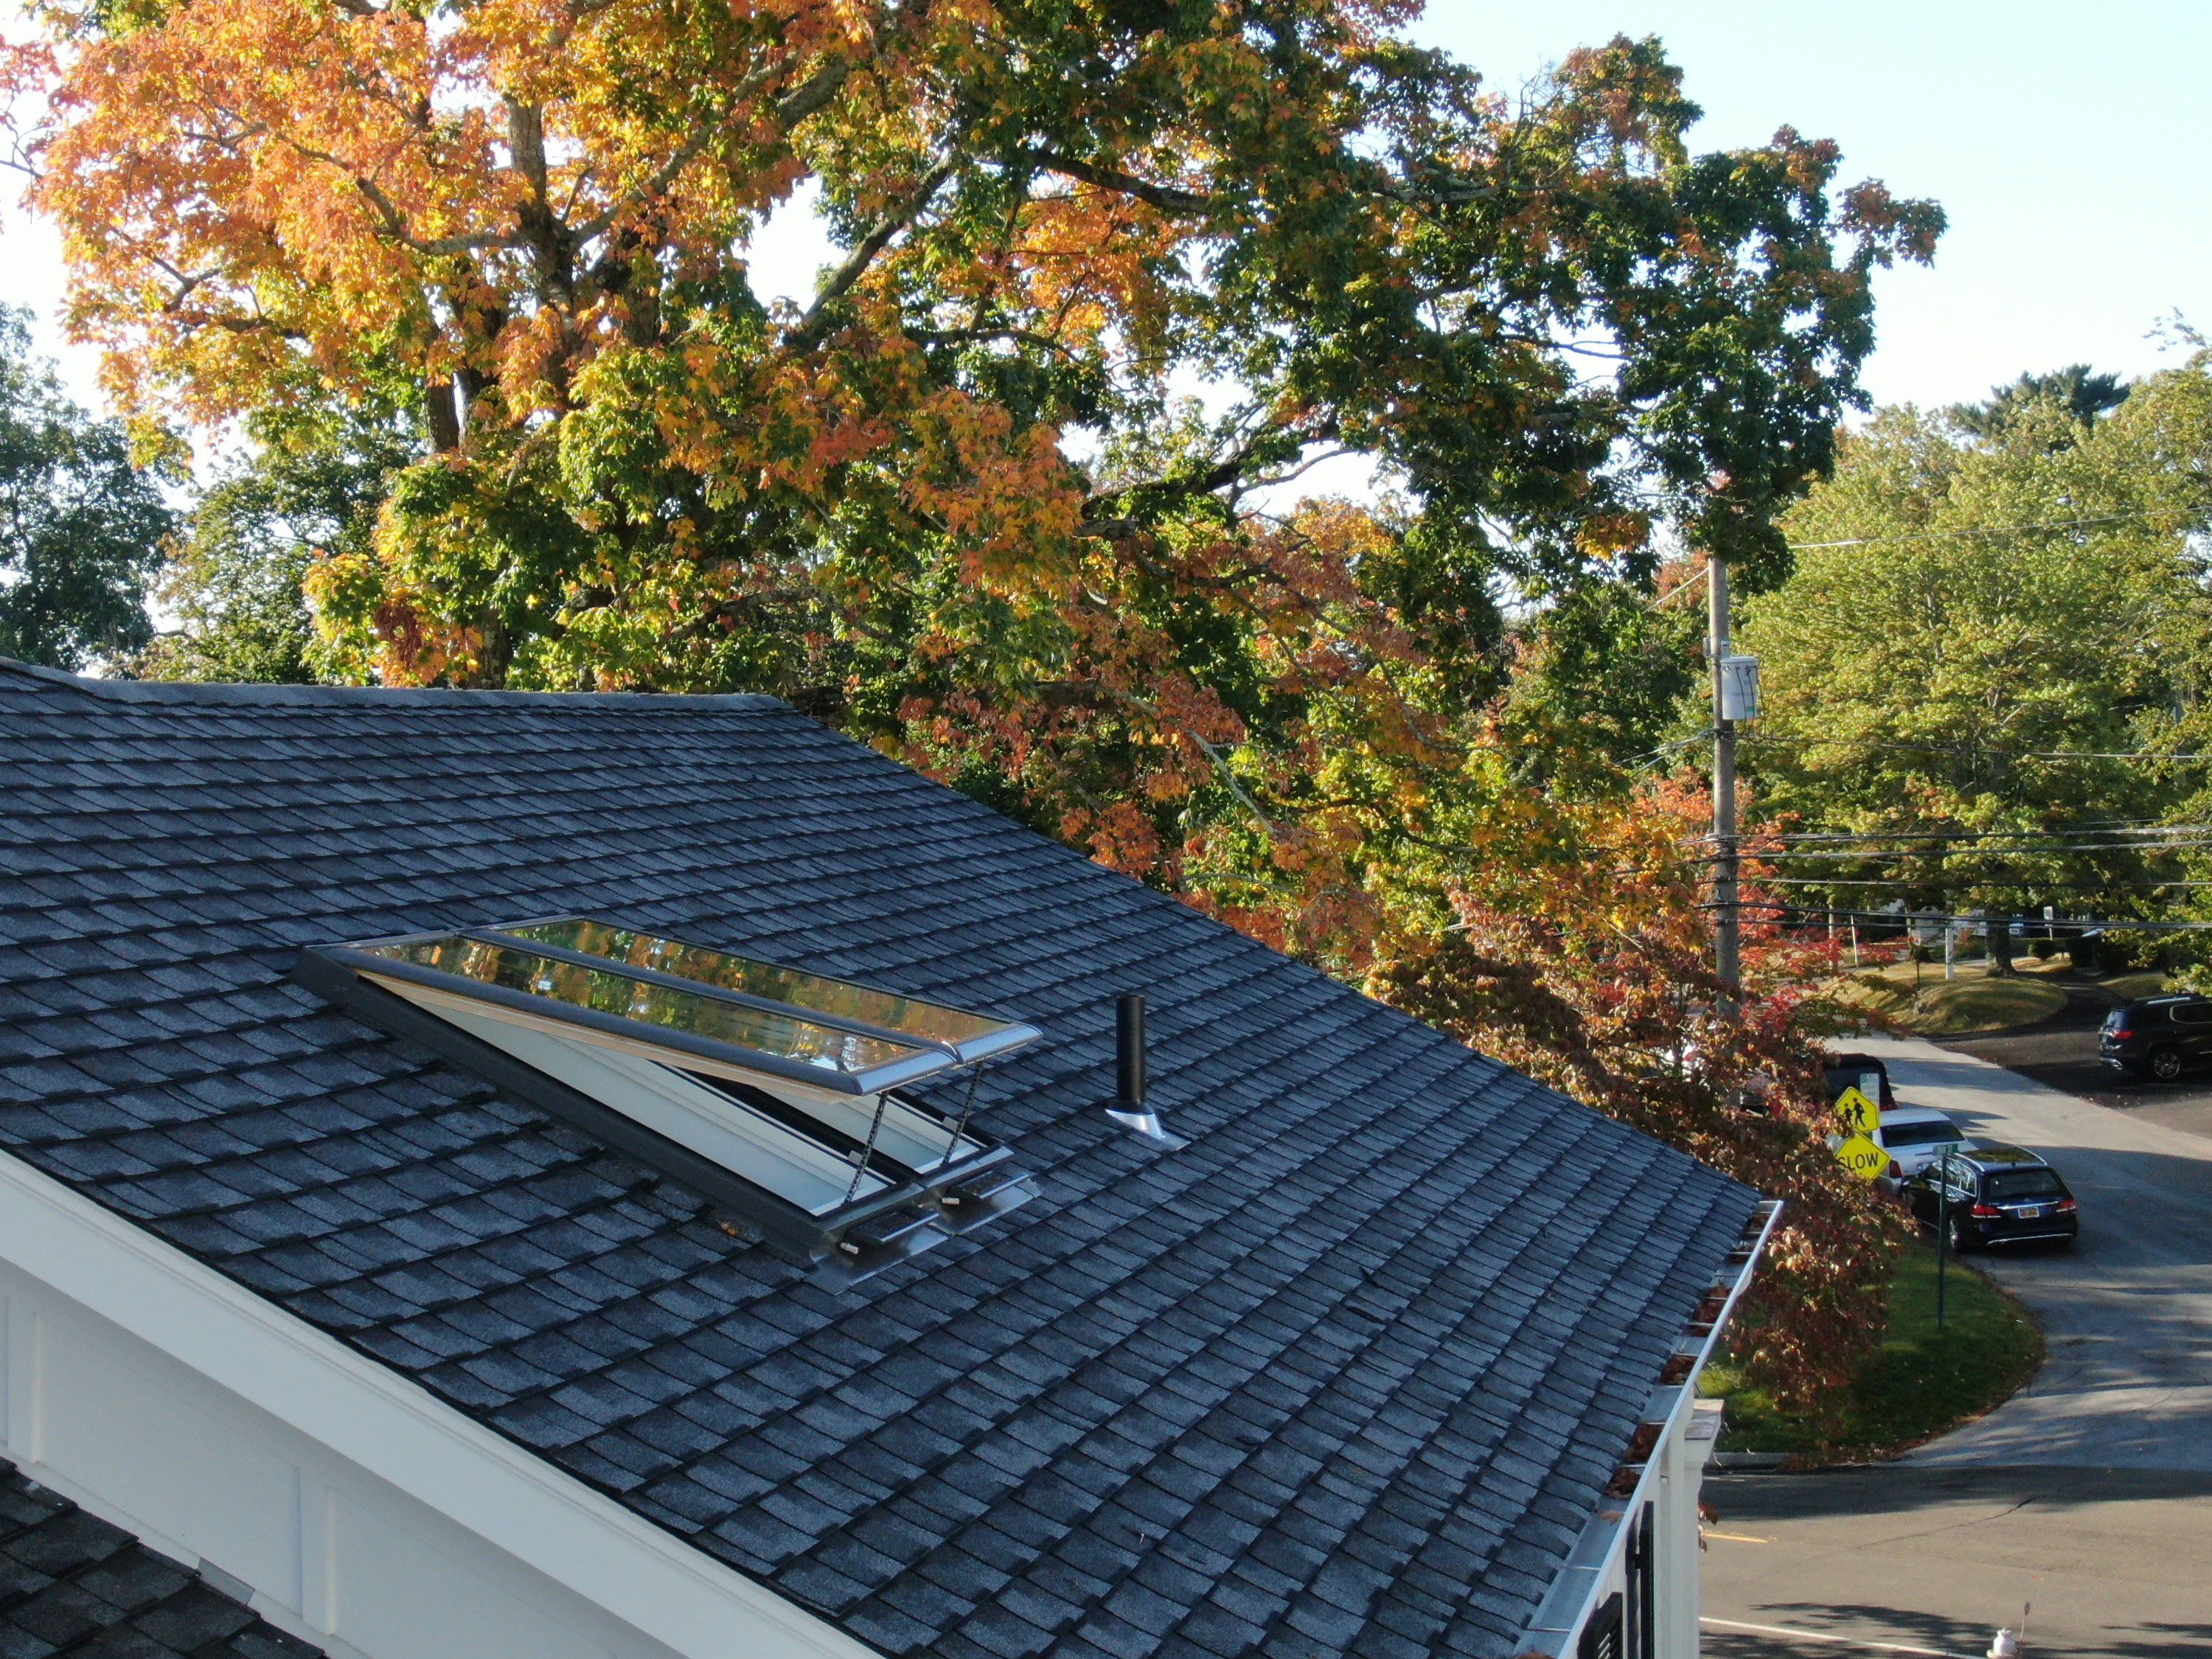 Roof view of an open skylight on a fall day